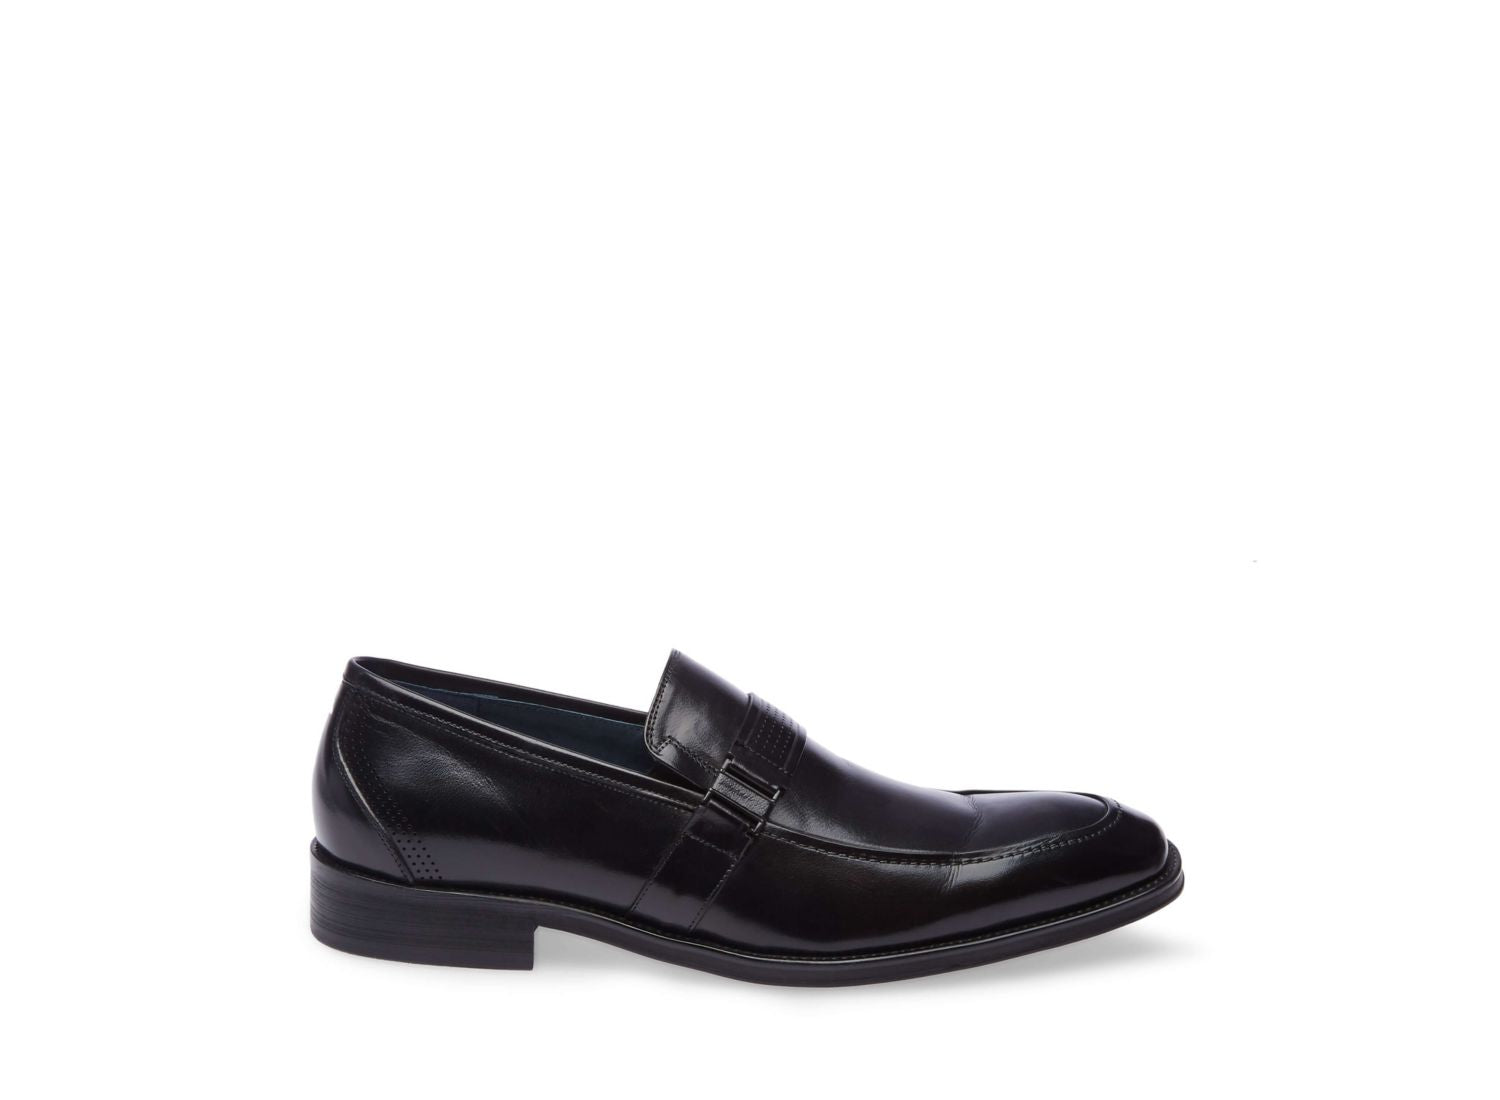 JAVA BLACK LEATHER - Steve Madden